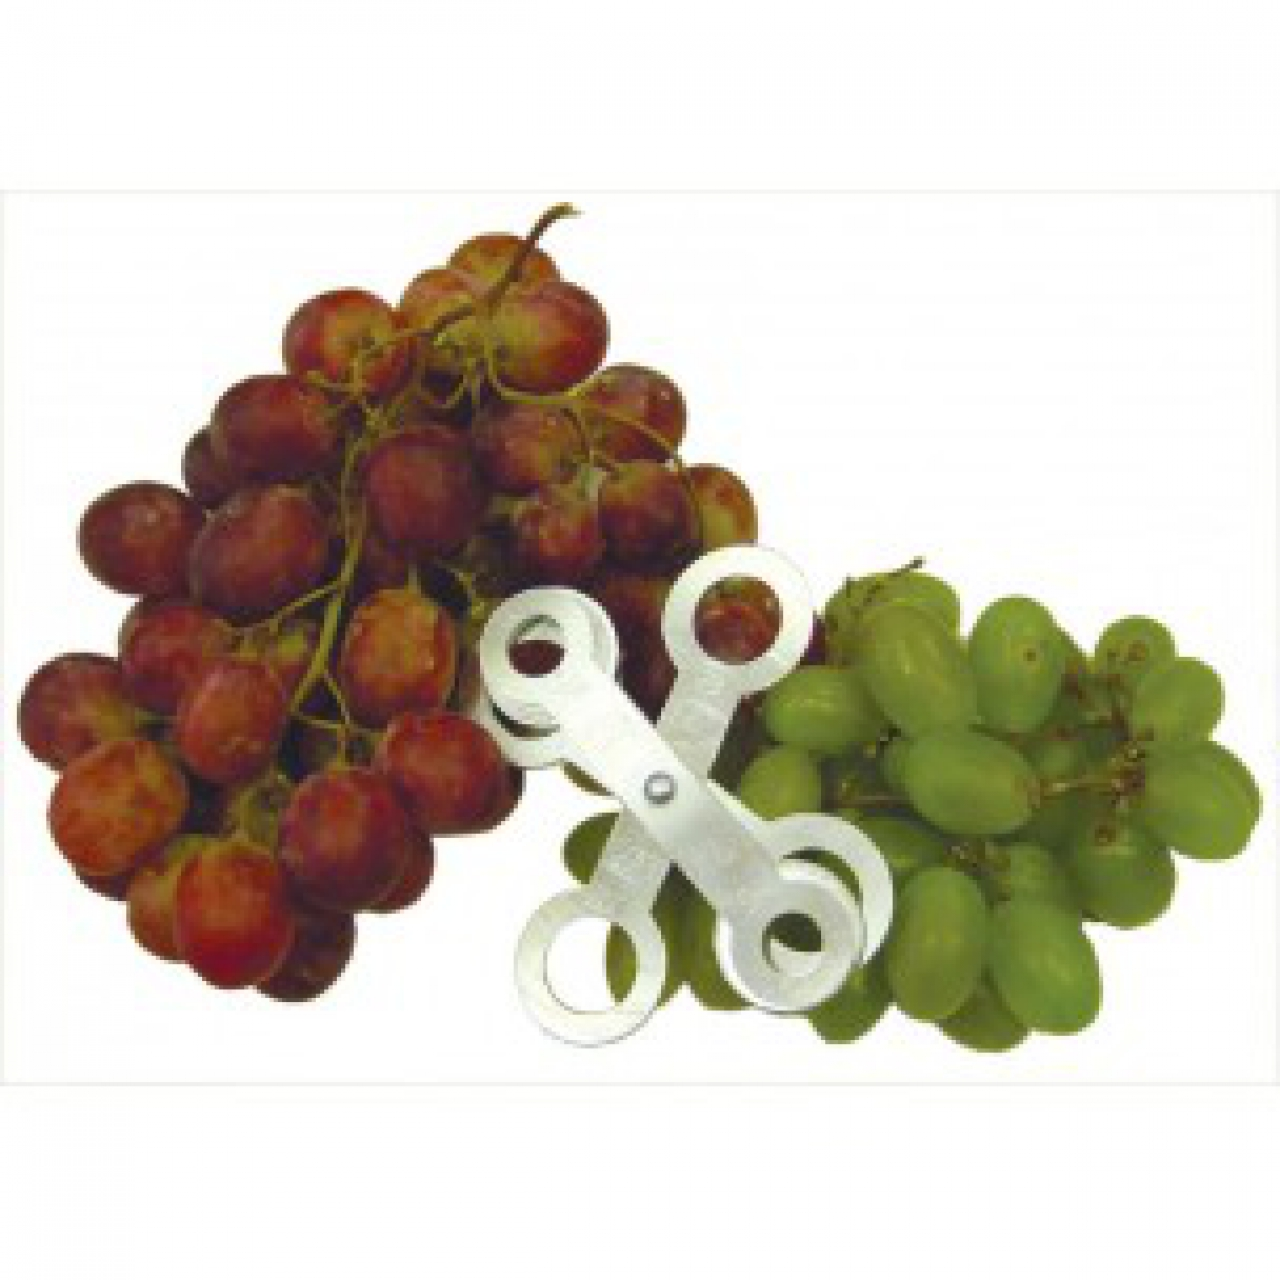 Small Table Grapes 11